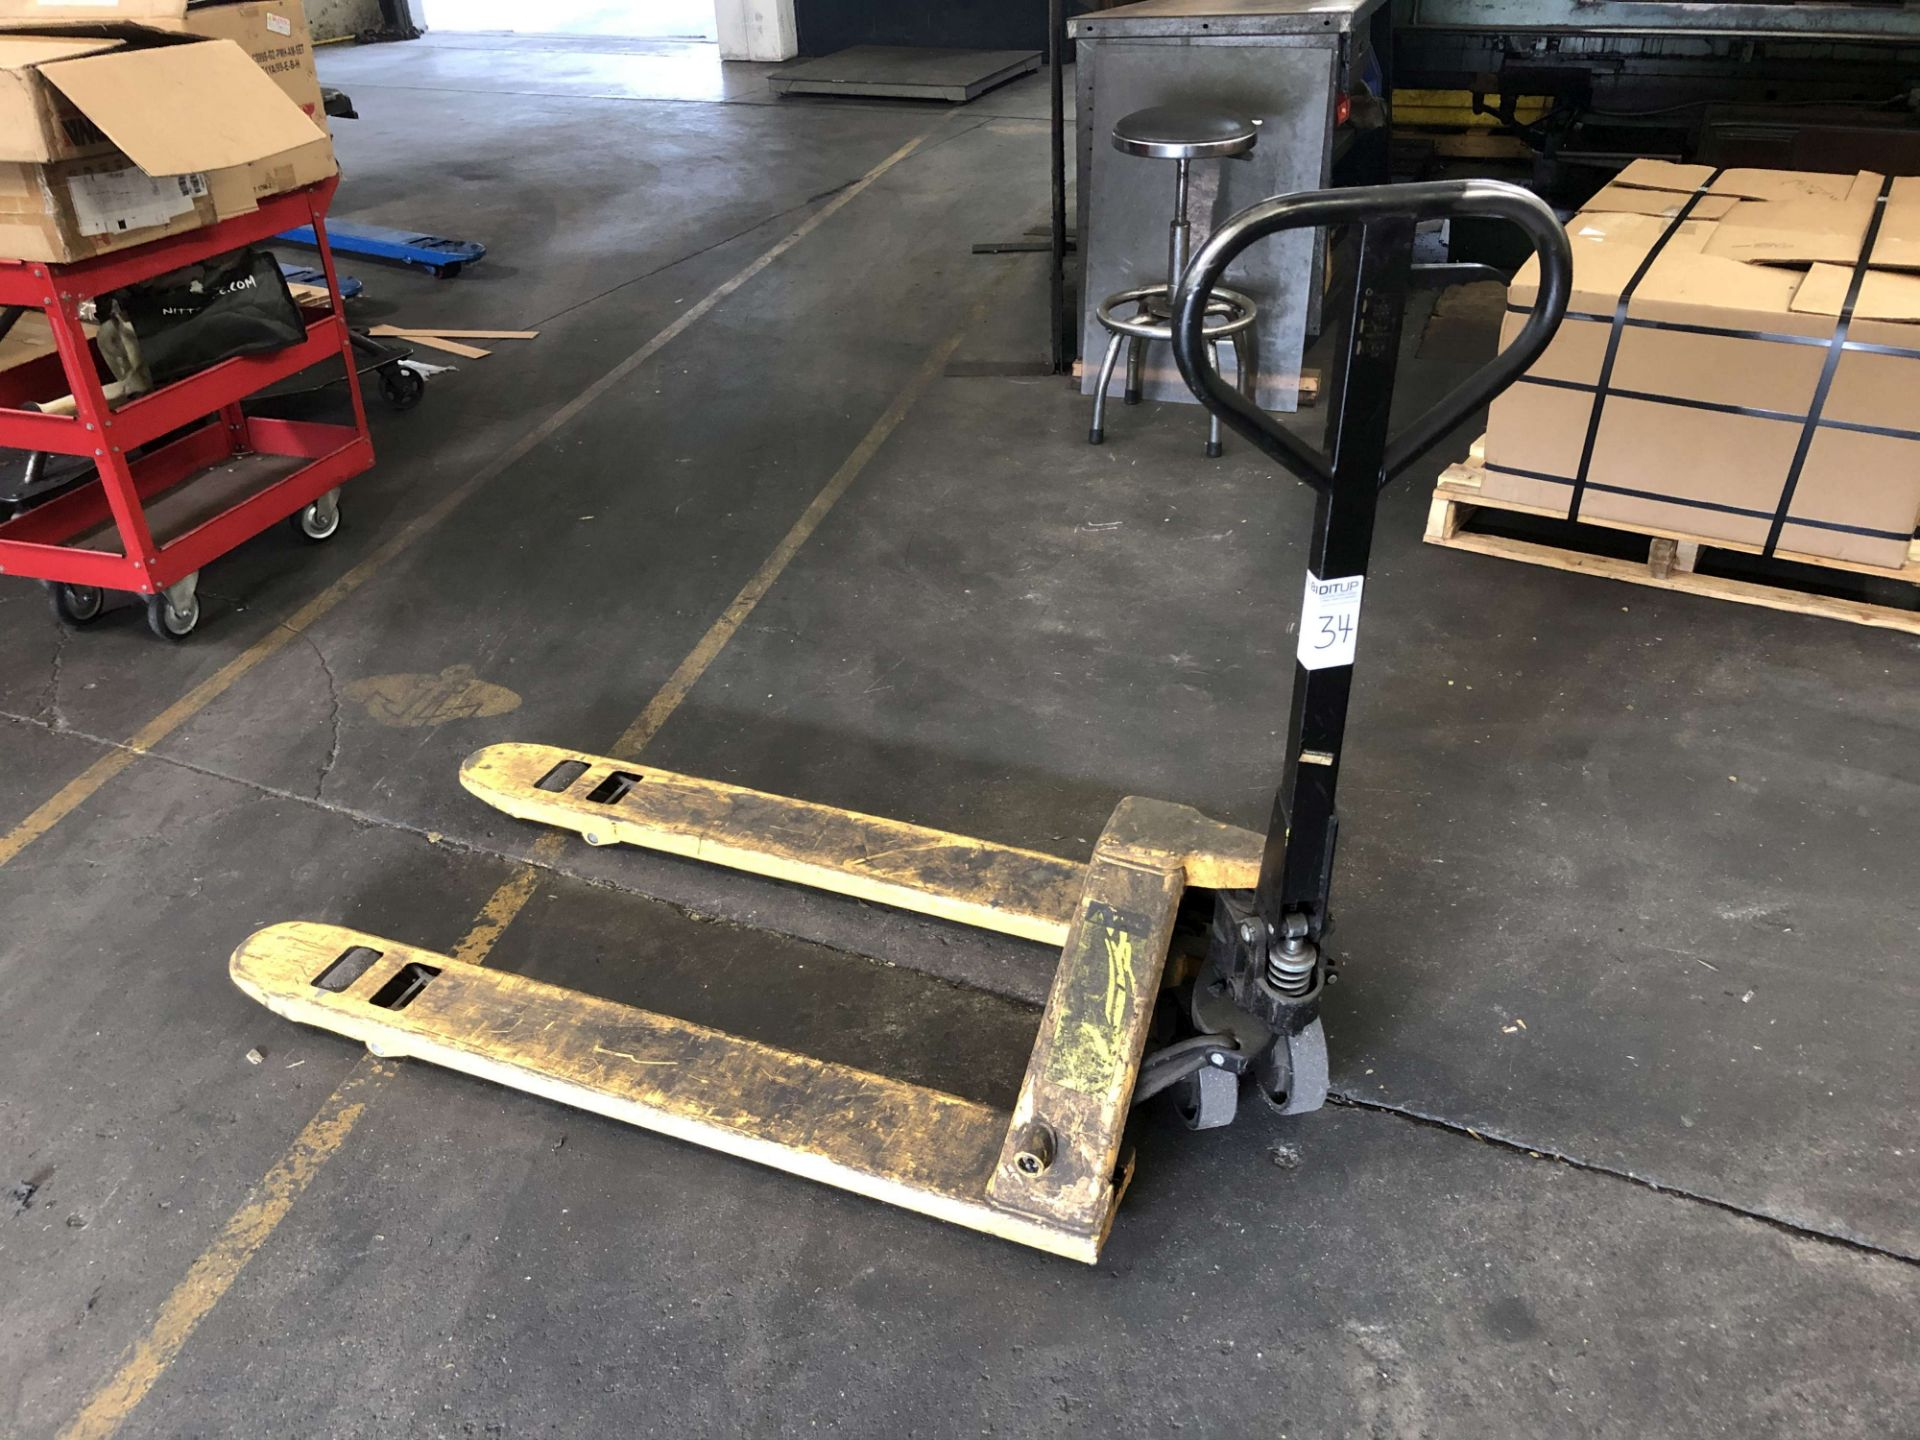 Lot 34 - 2008 Uline 5,500 Lb. Cap. Pallet Jack, Model H-1043, S/N 017353